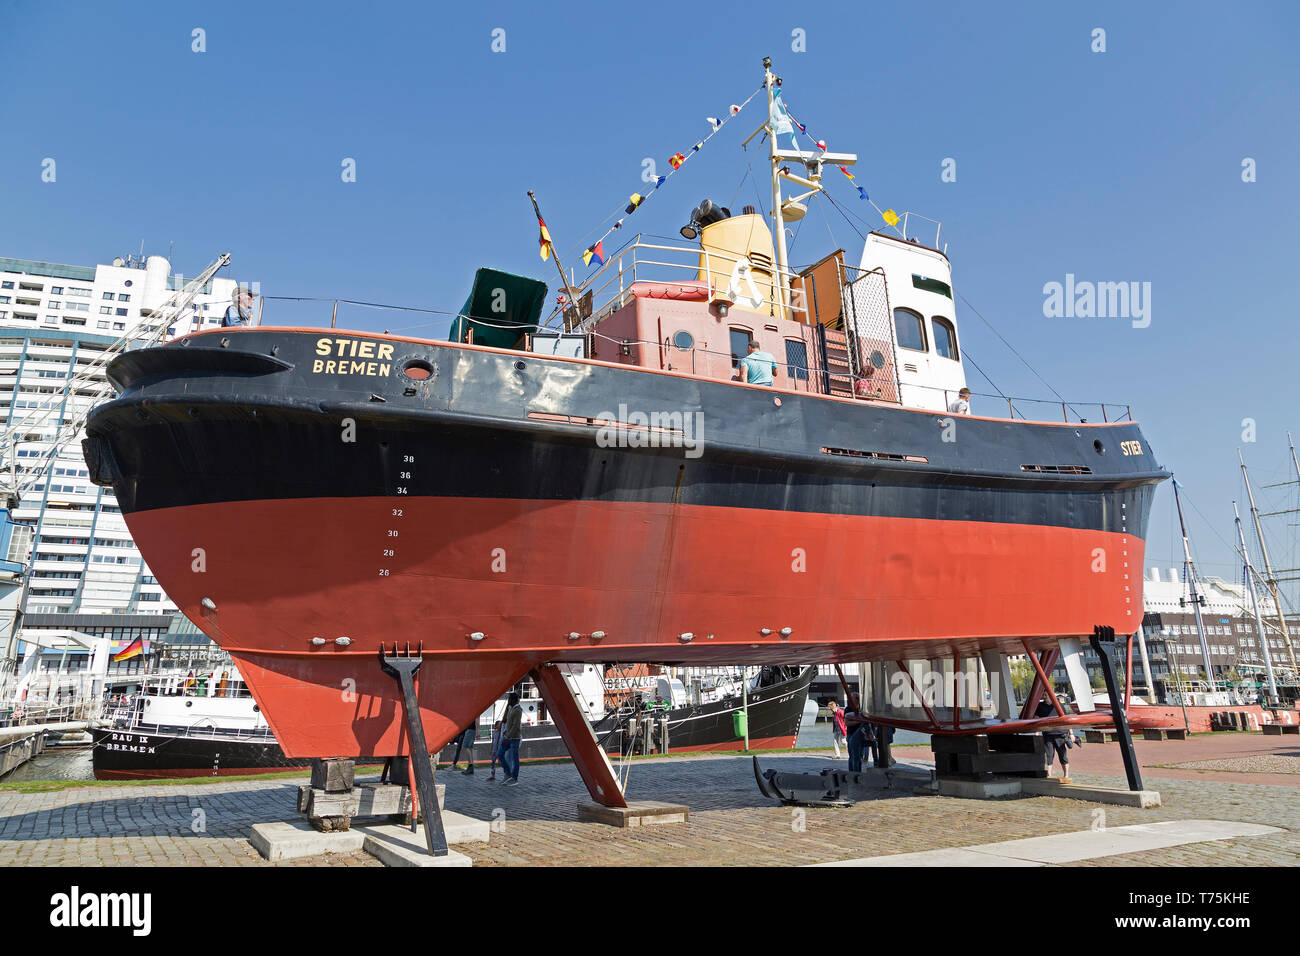 tugboat Stier at the museum-harbour, Bremerhaven, Bremen, Germany Stock Photo